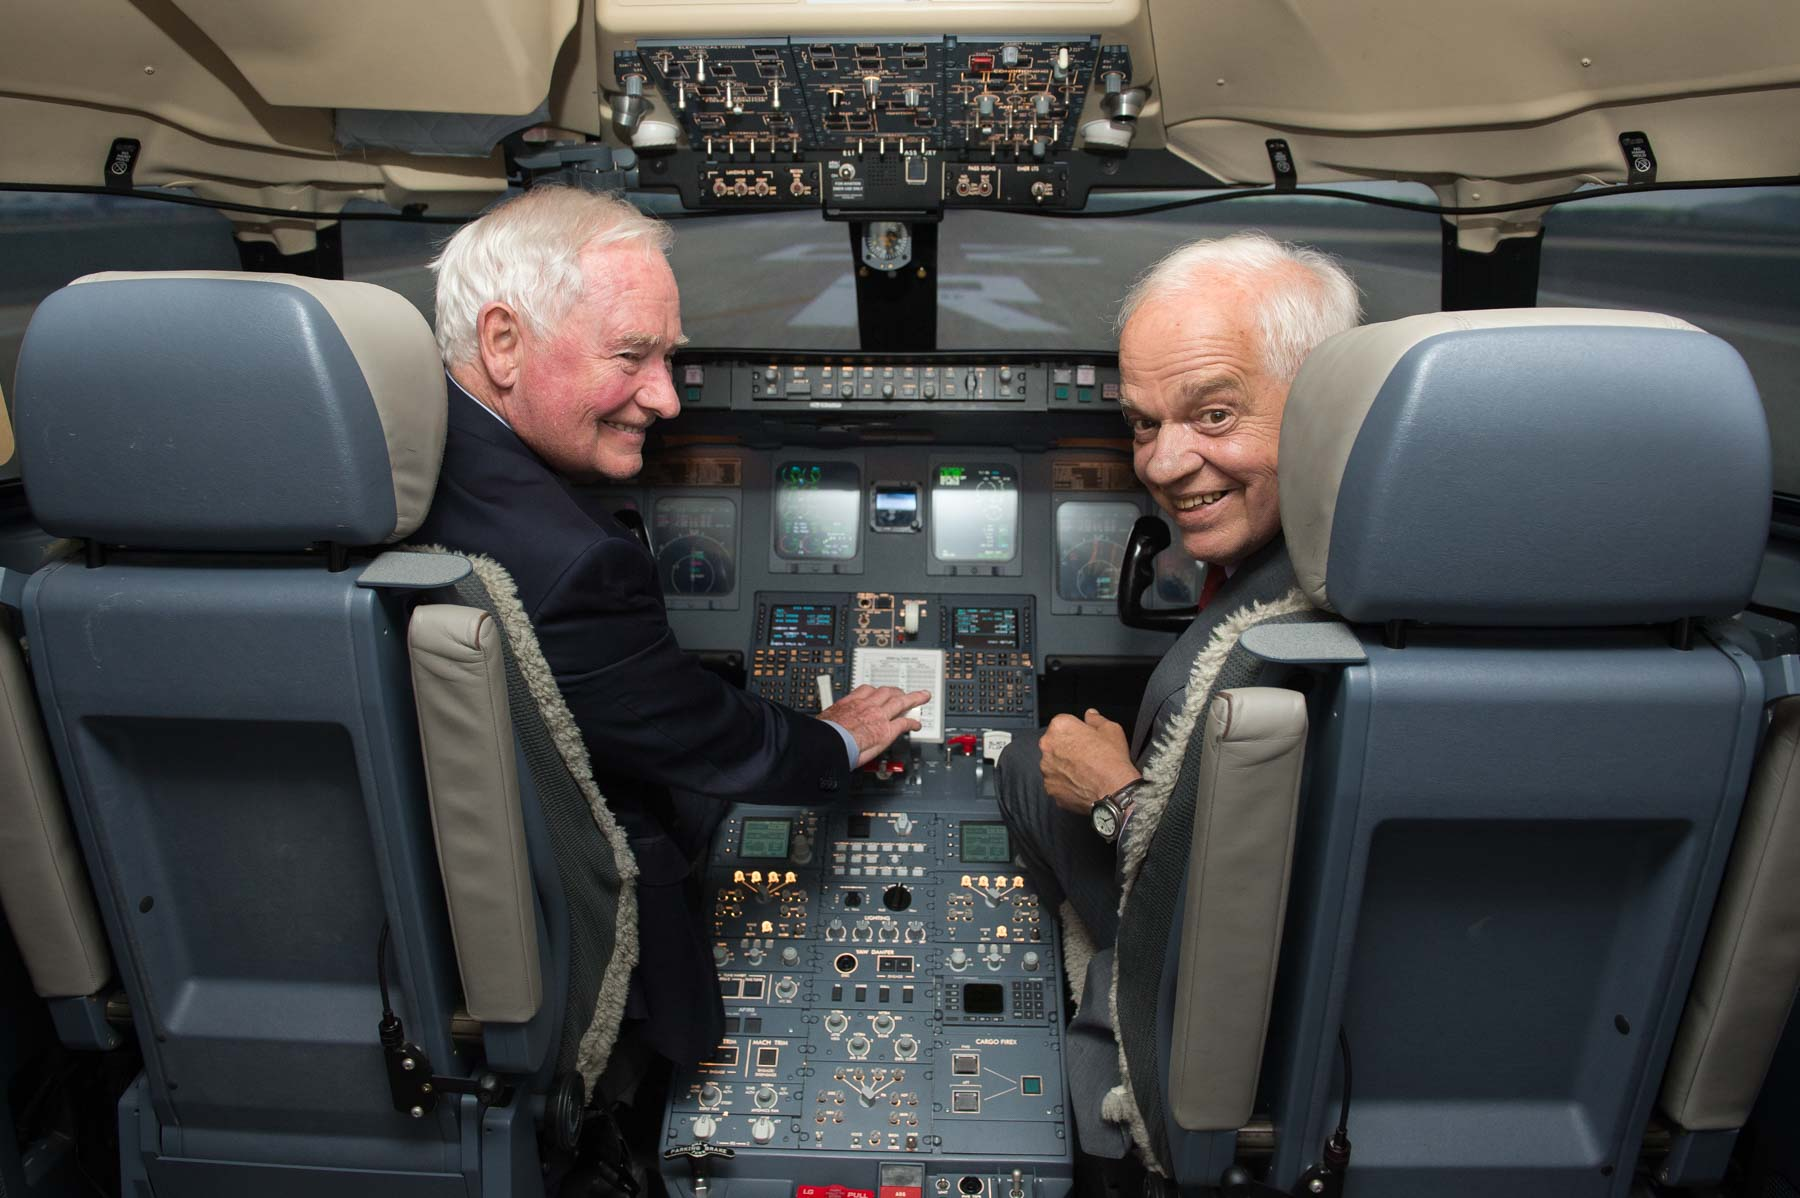 The Governor General and the Honourable John McCallum, Ambassador of Canada to the People's Republic of China, had the opportunity to test a Canadian flight simulator.